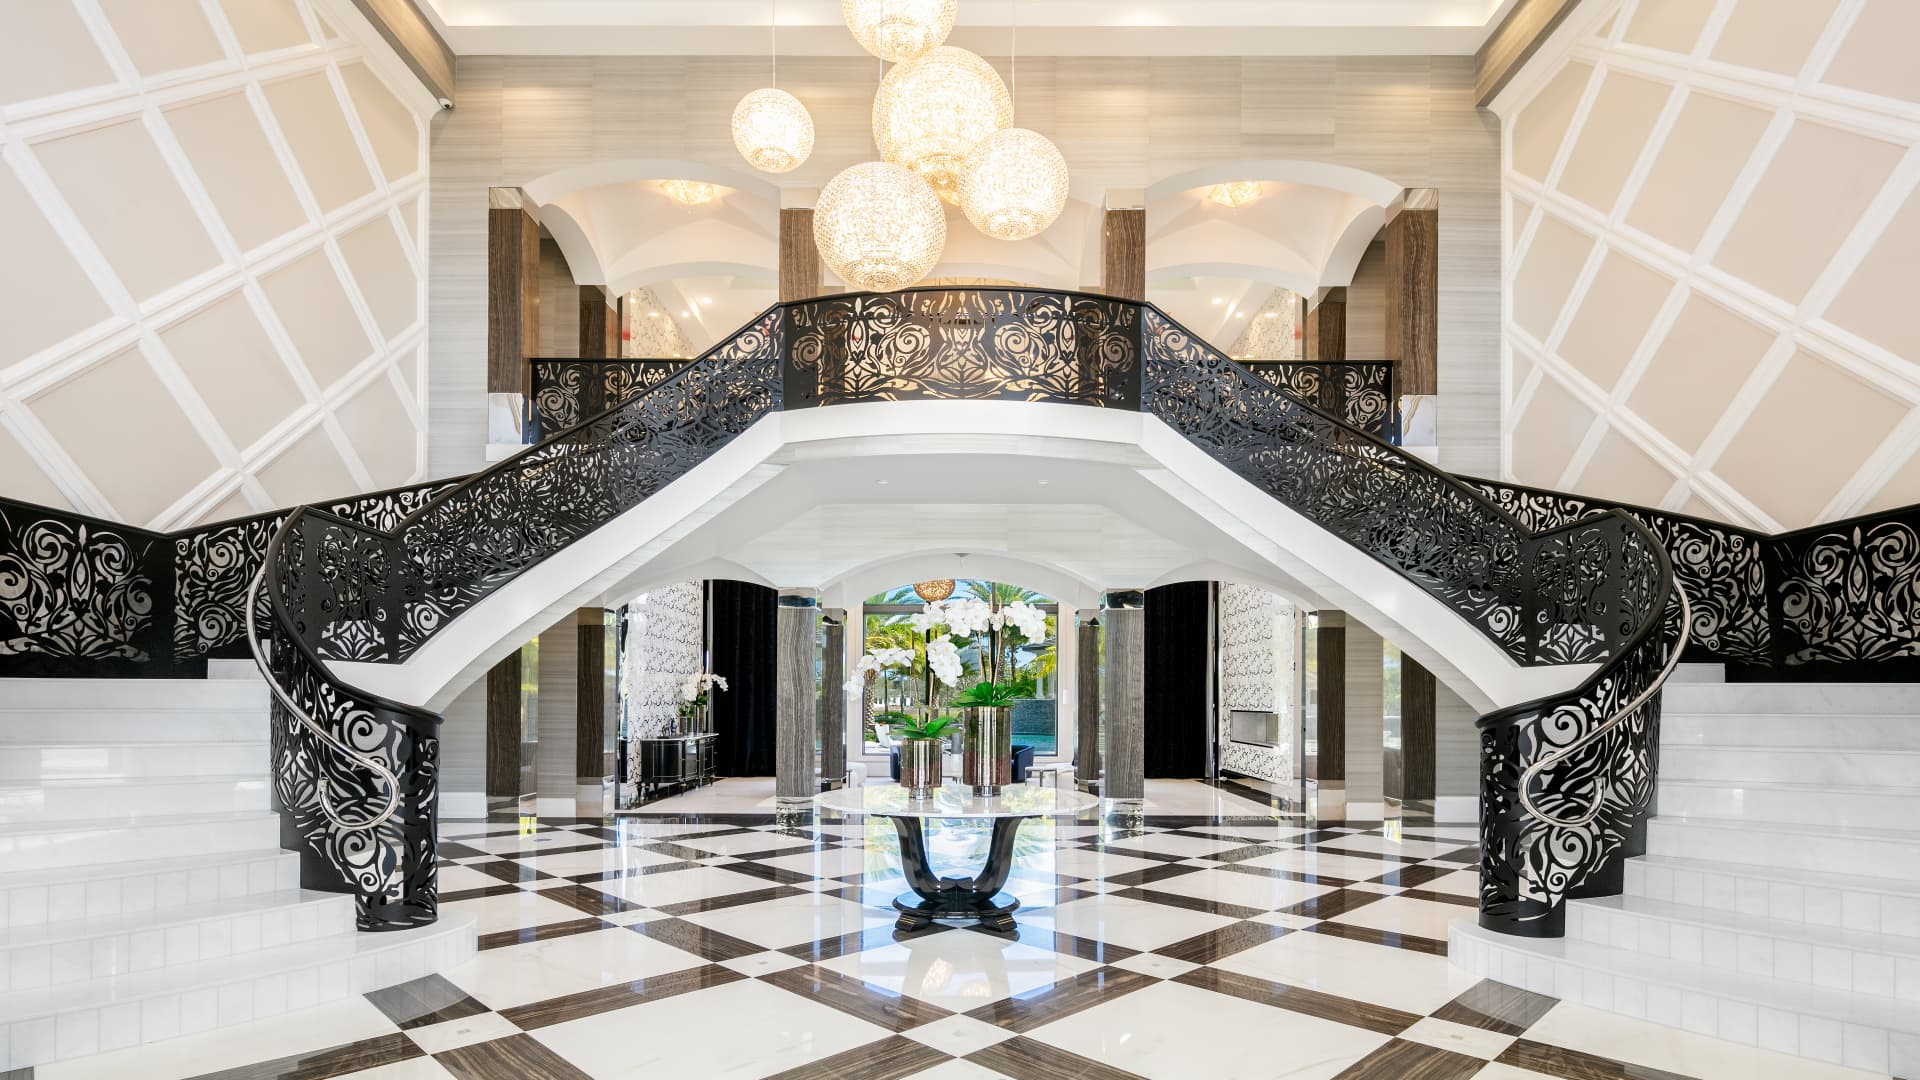 The foyer's grand double staircase